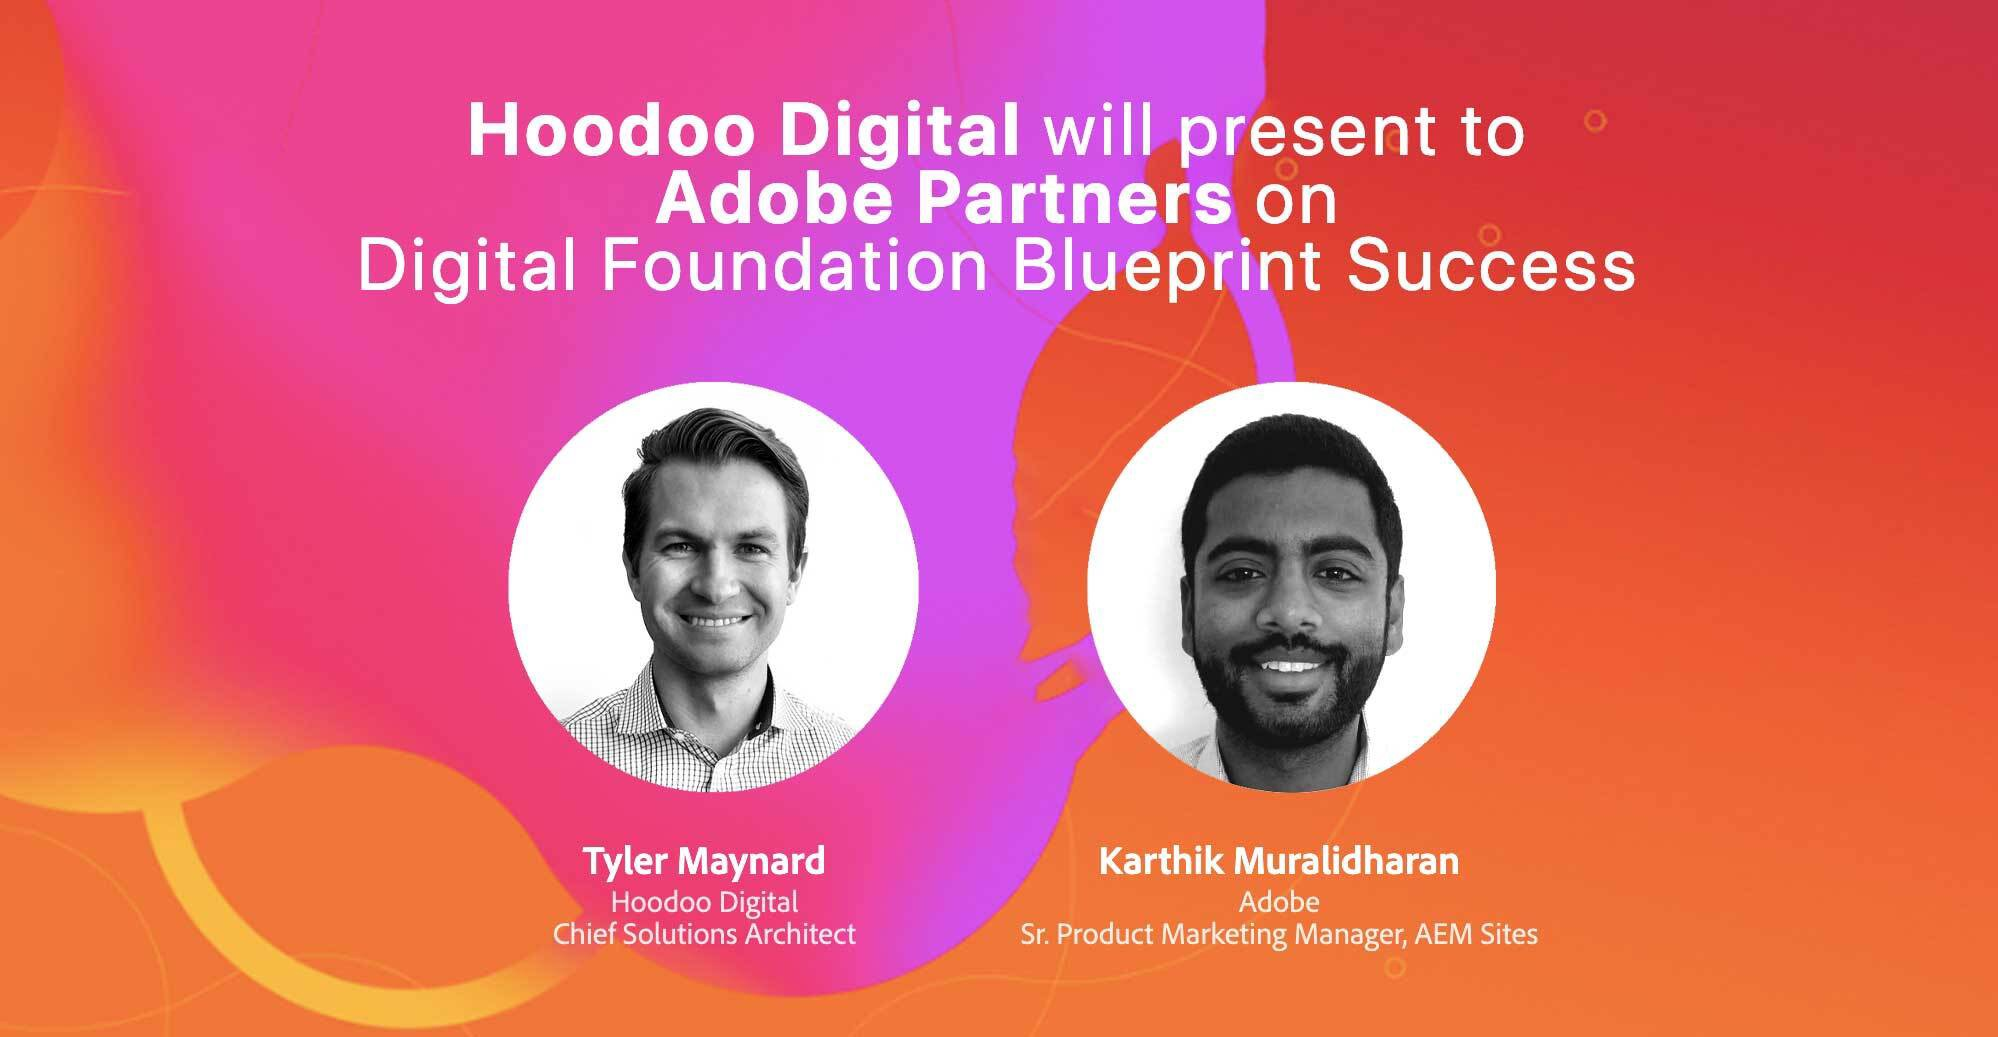 Hoodoo Digital will present to Adobe Partners on Digital Foundation Blueprint Success